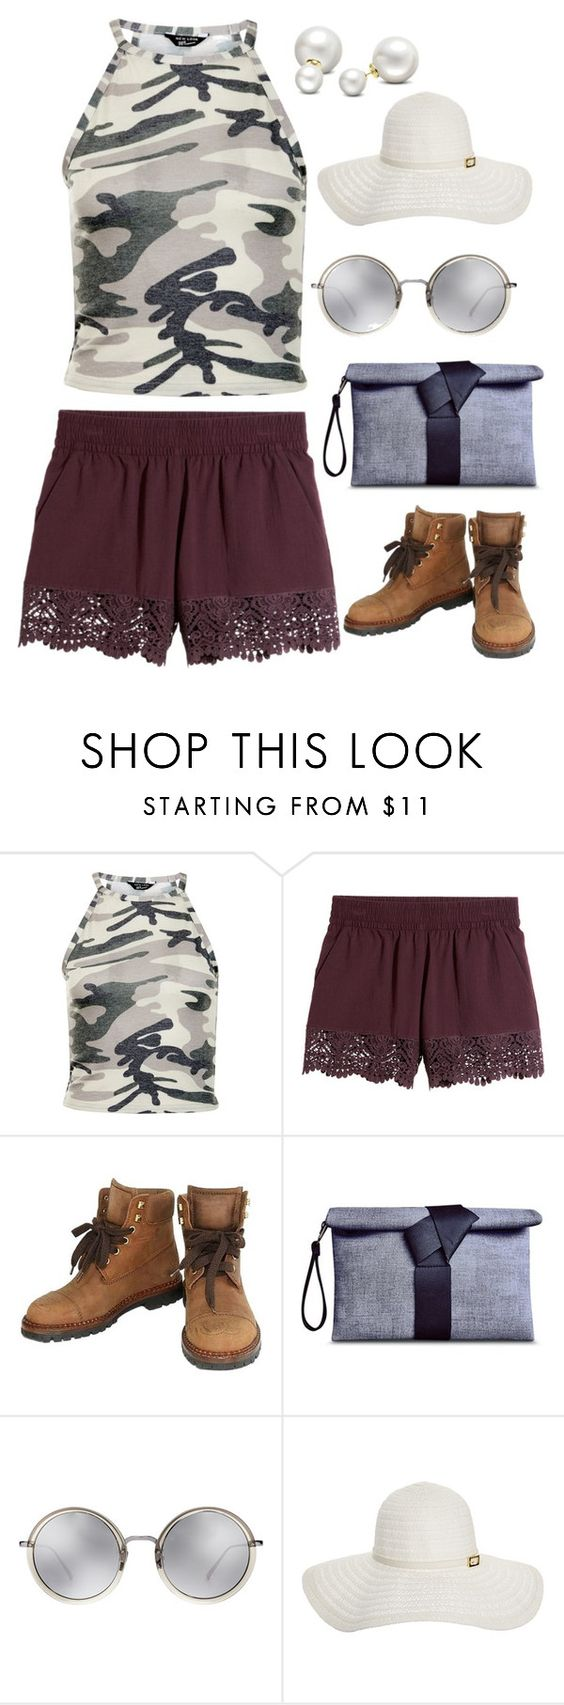 """""""Untitled #4123"""" by kaitoven on Polyvore featuring New Look, Chanel, Linda Farrow, Melissa Odabash and Allurez"""